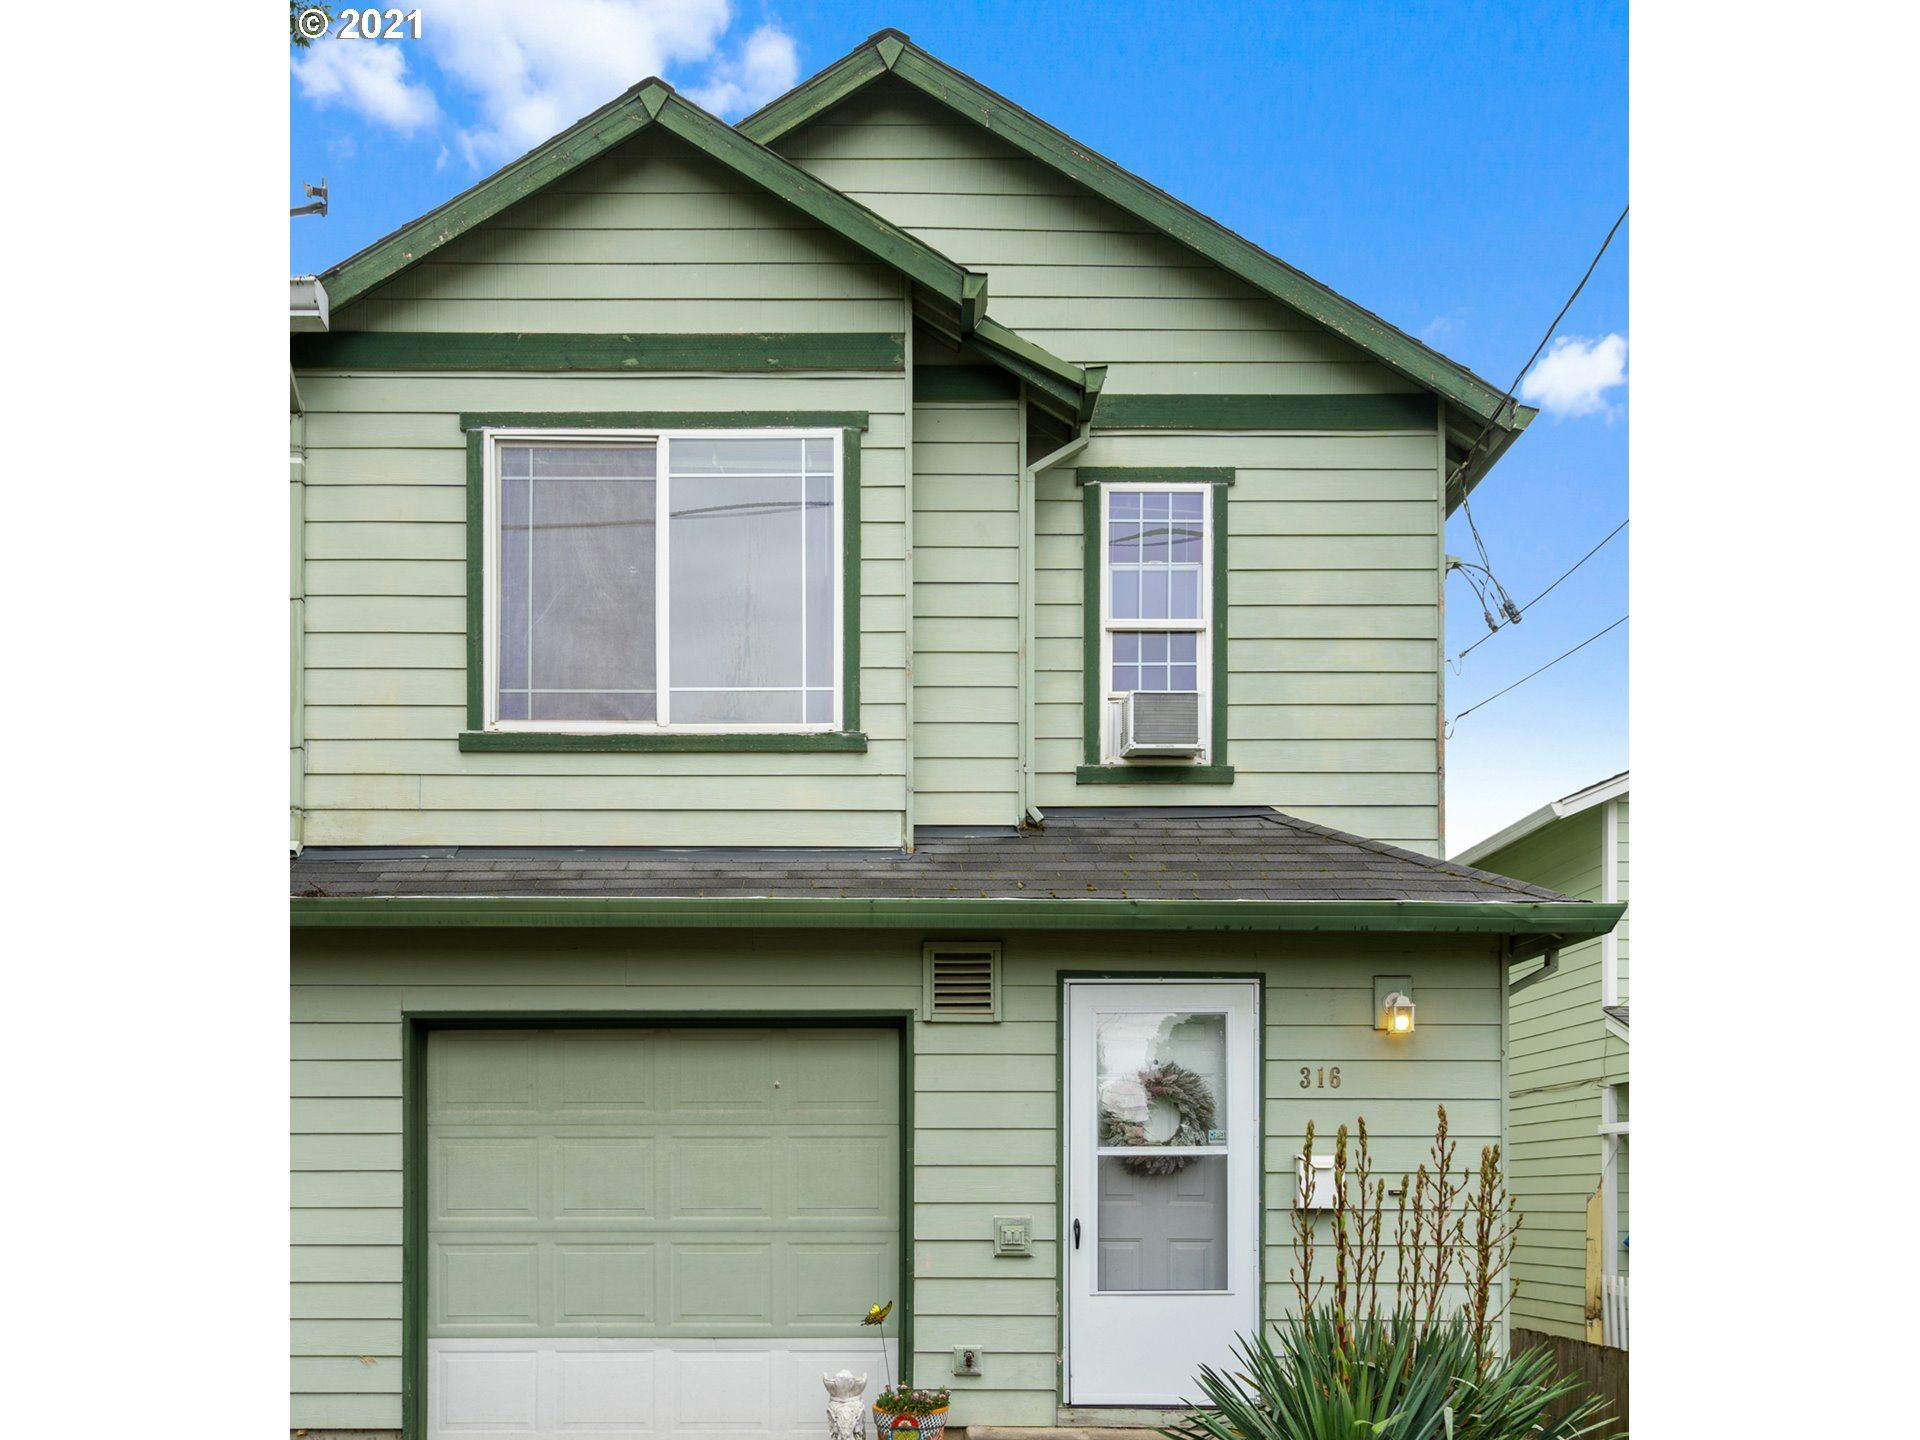 316 SE 88TH AVE, Portland, OR 97216 - MLS#: 21404022